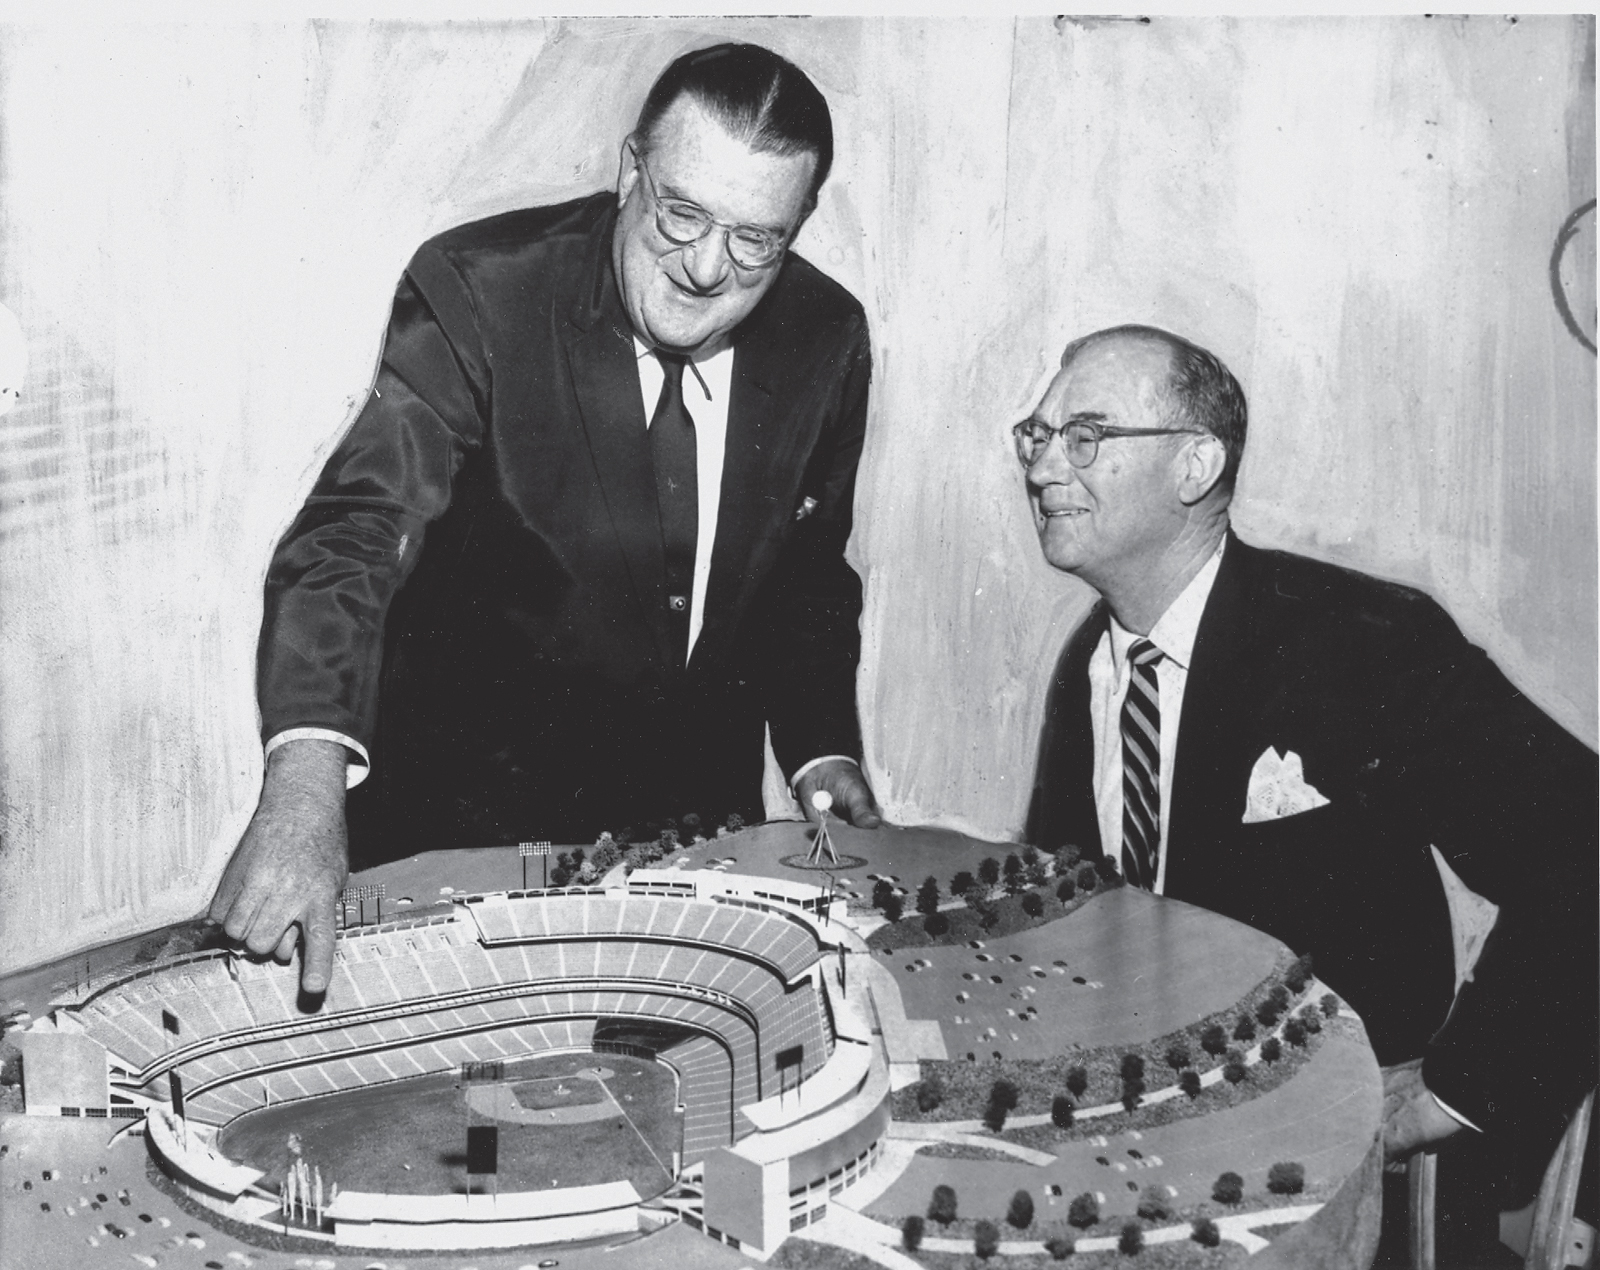 Walter O'Malley and Del Webb looking at a Dodgers Stadium model